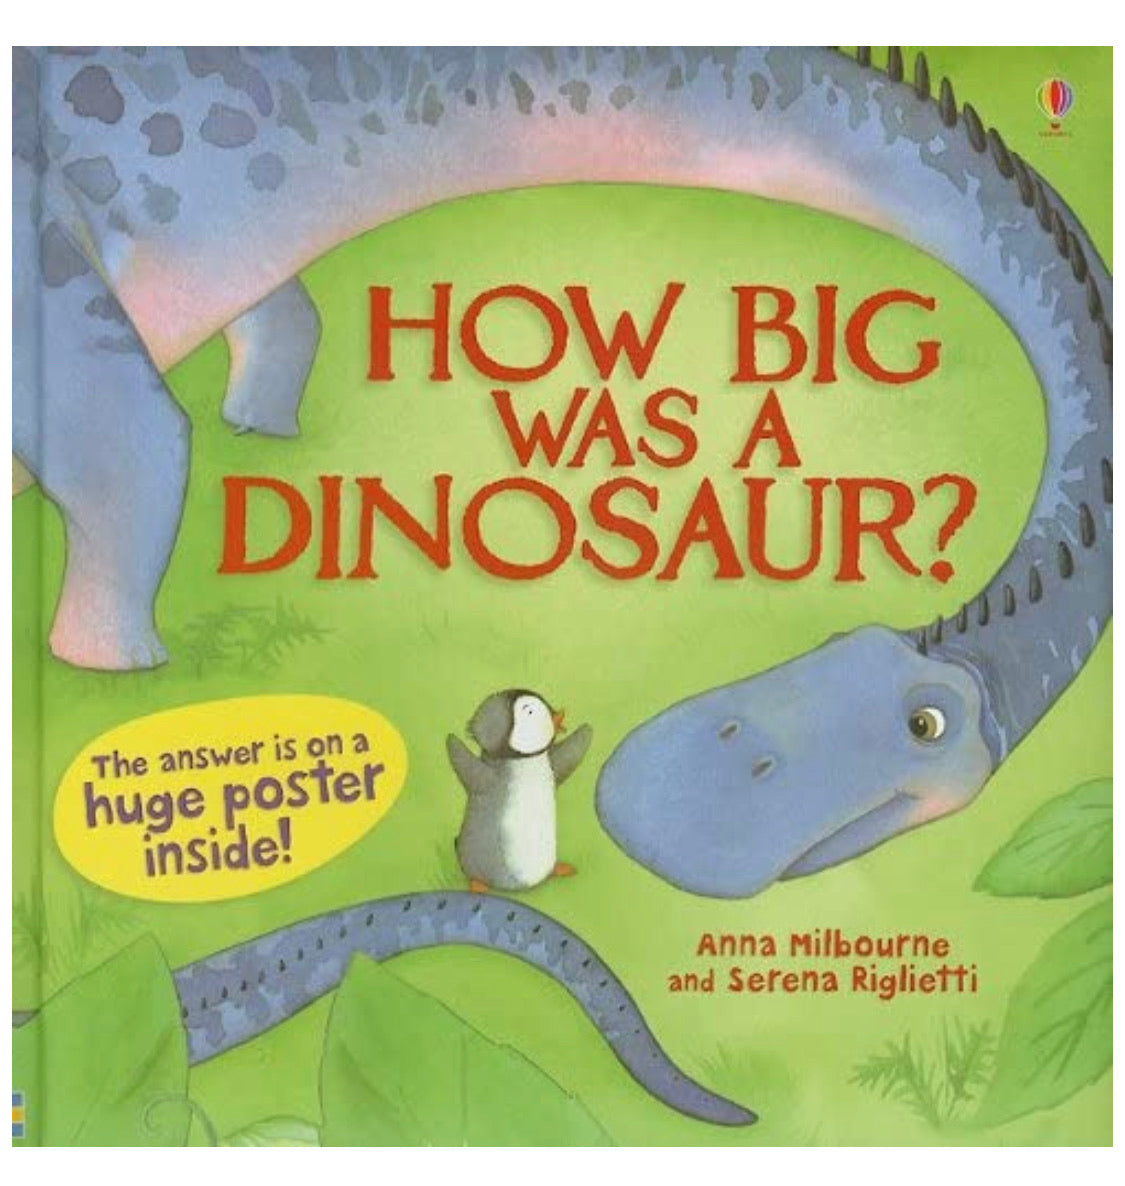 How Big Was A Dinosaur? - Usborne Books (Used-Like New)